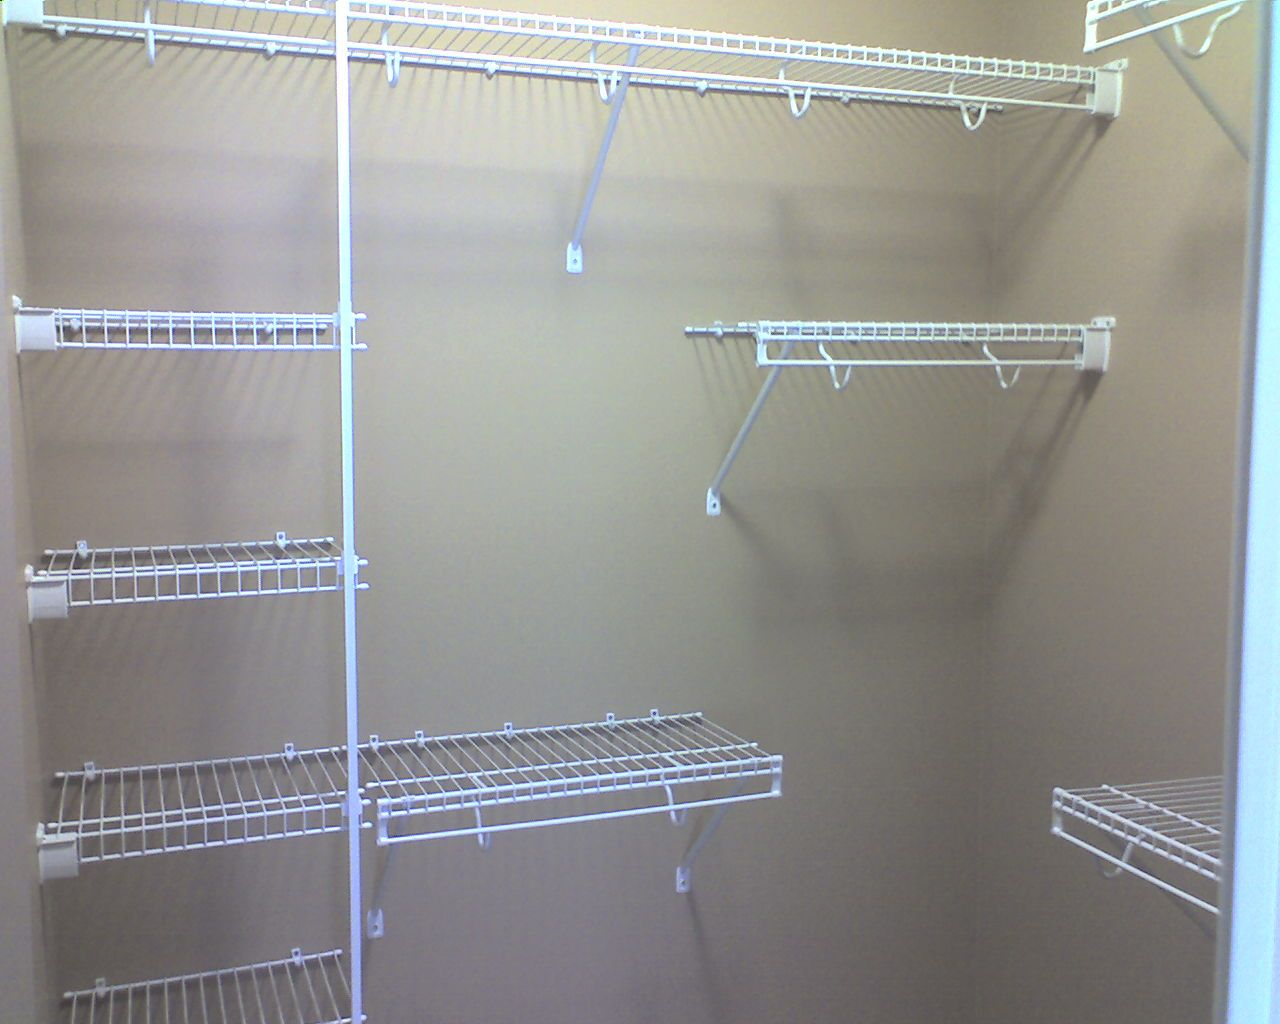 White Coated Wire Closet Shelving White Coated Wire Closet Shelving Plastic  Coated Wire Closet Shelving 1280 X 1024 White Coated Wire Closet Shelving